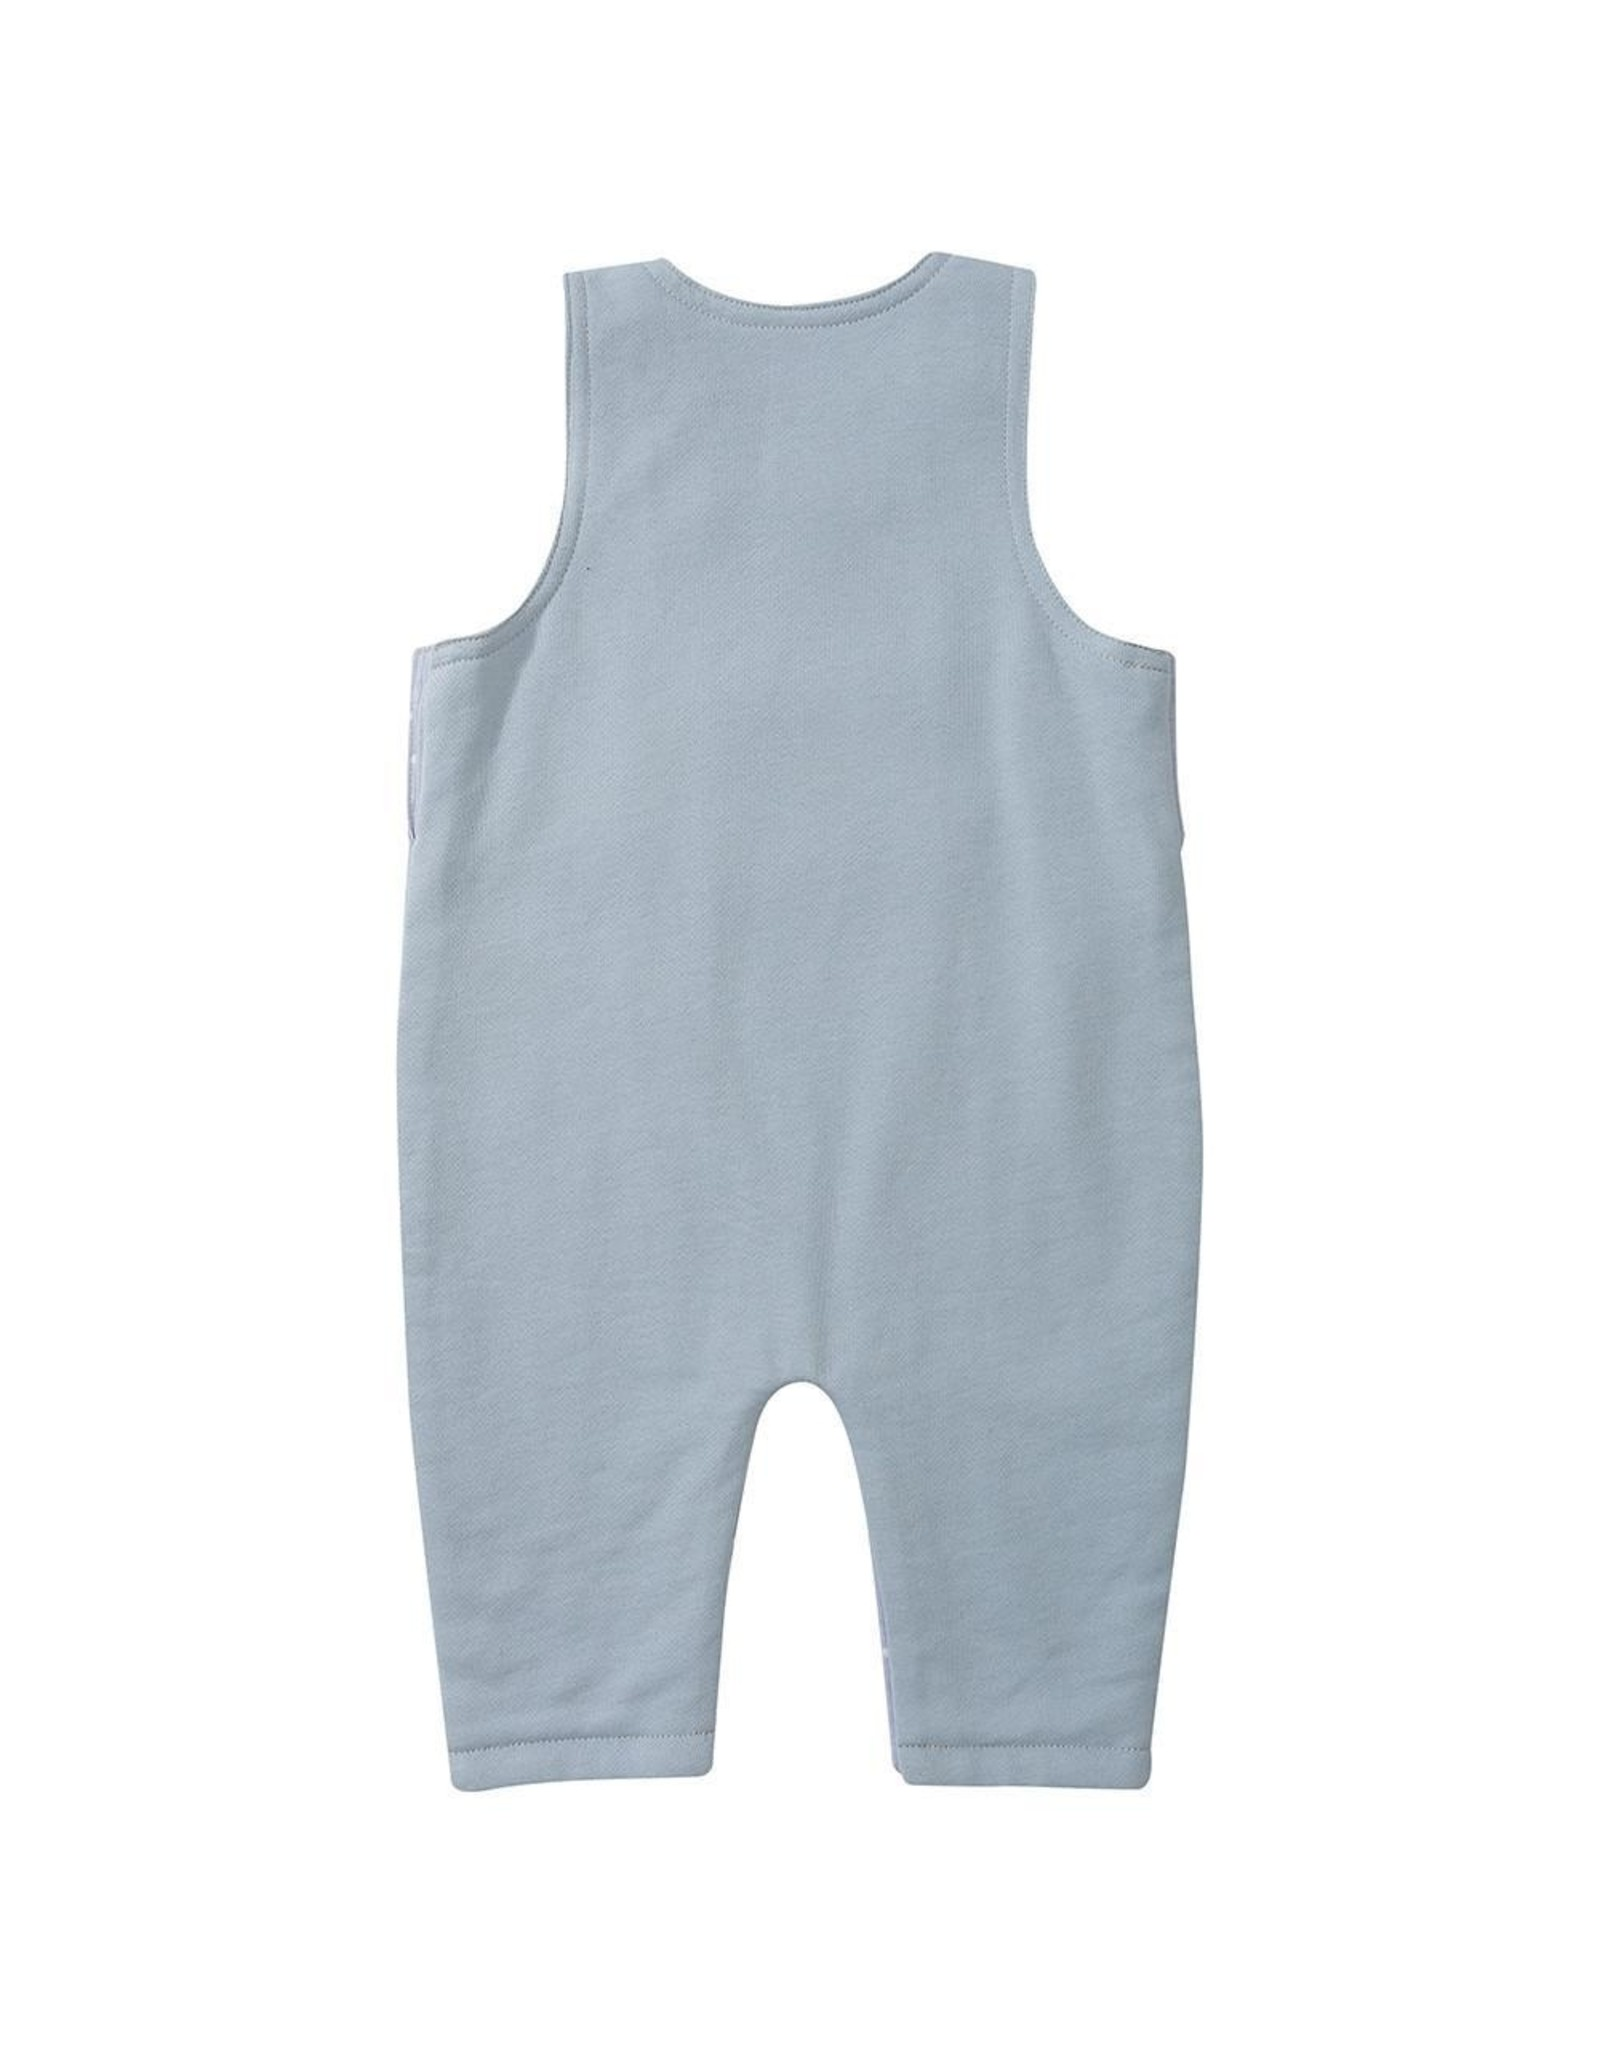 Dotty Dungarees Pale Blue  Diddy Dungarees